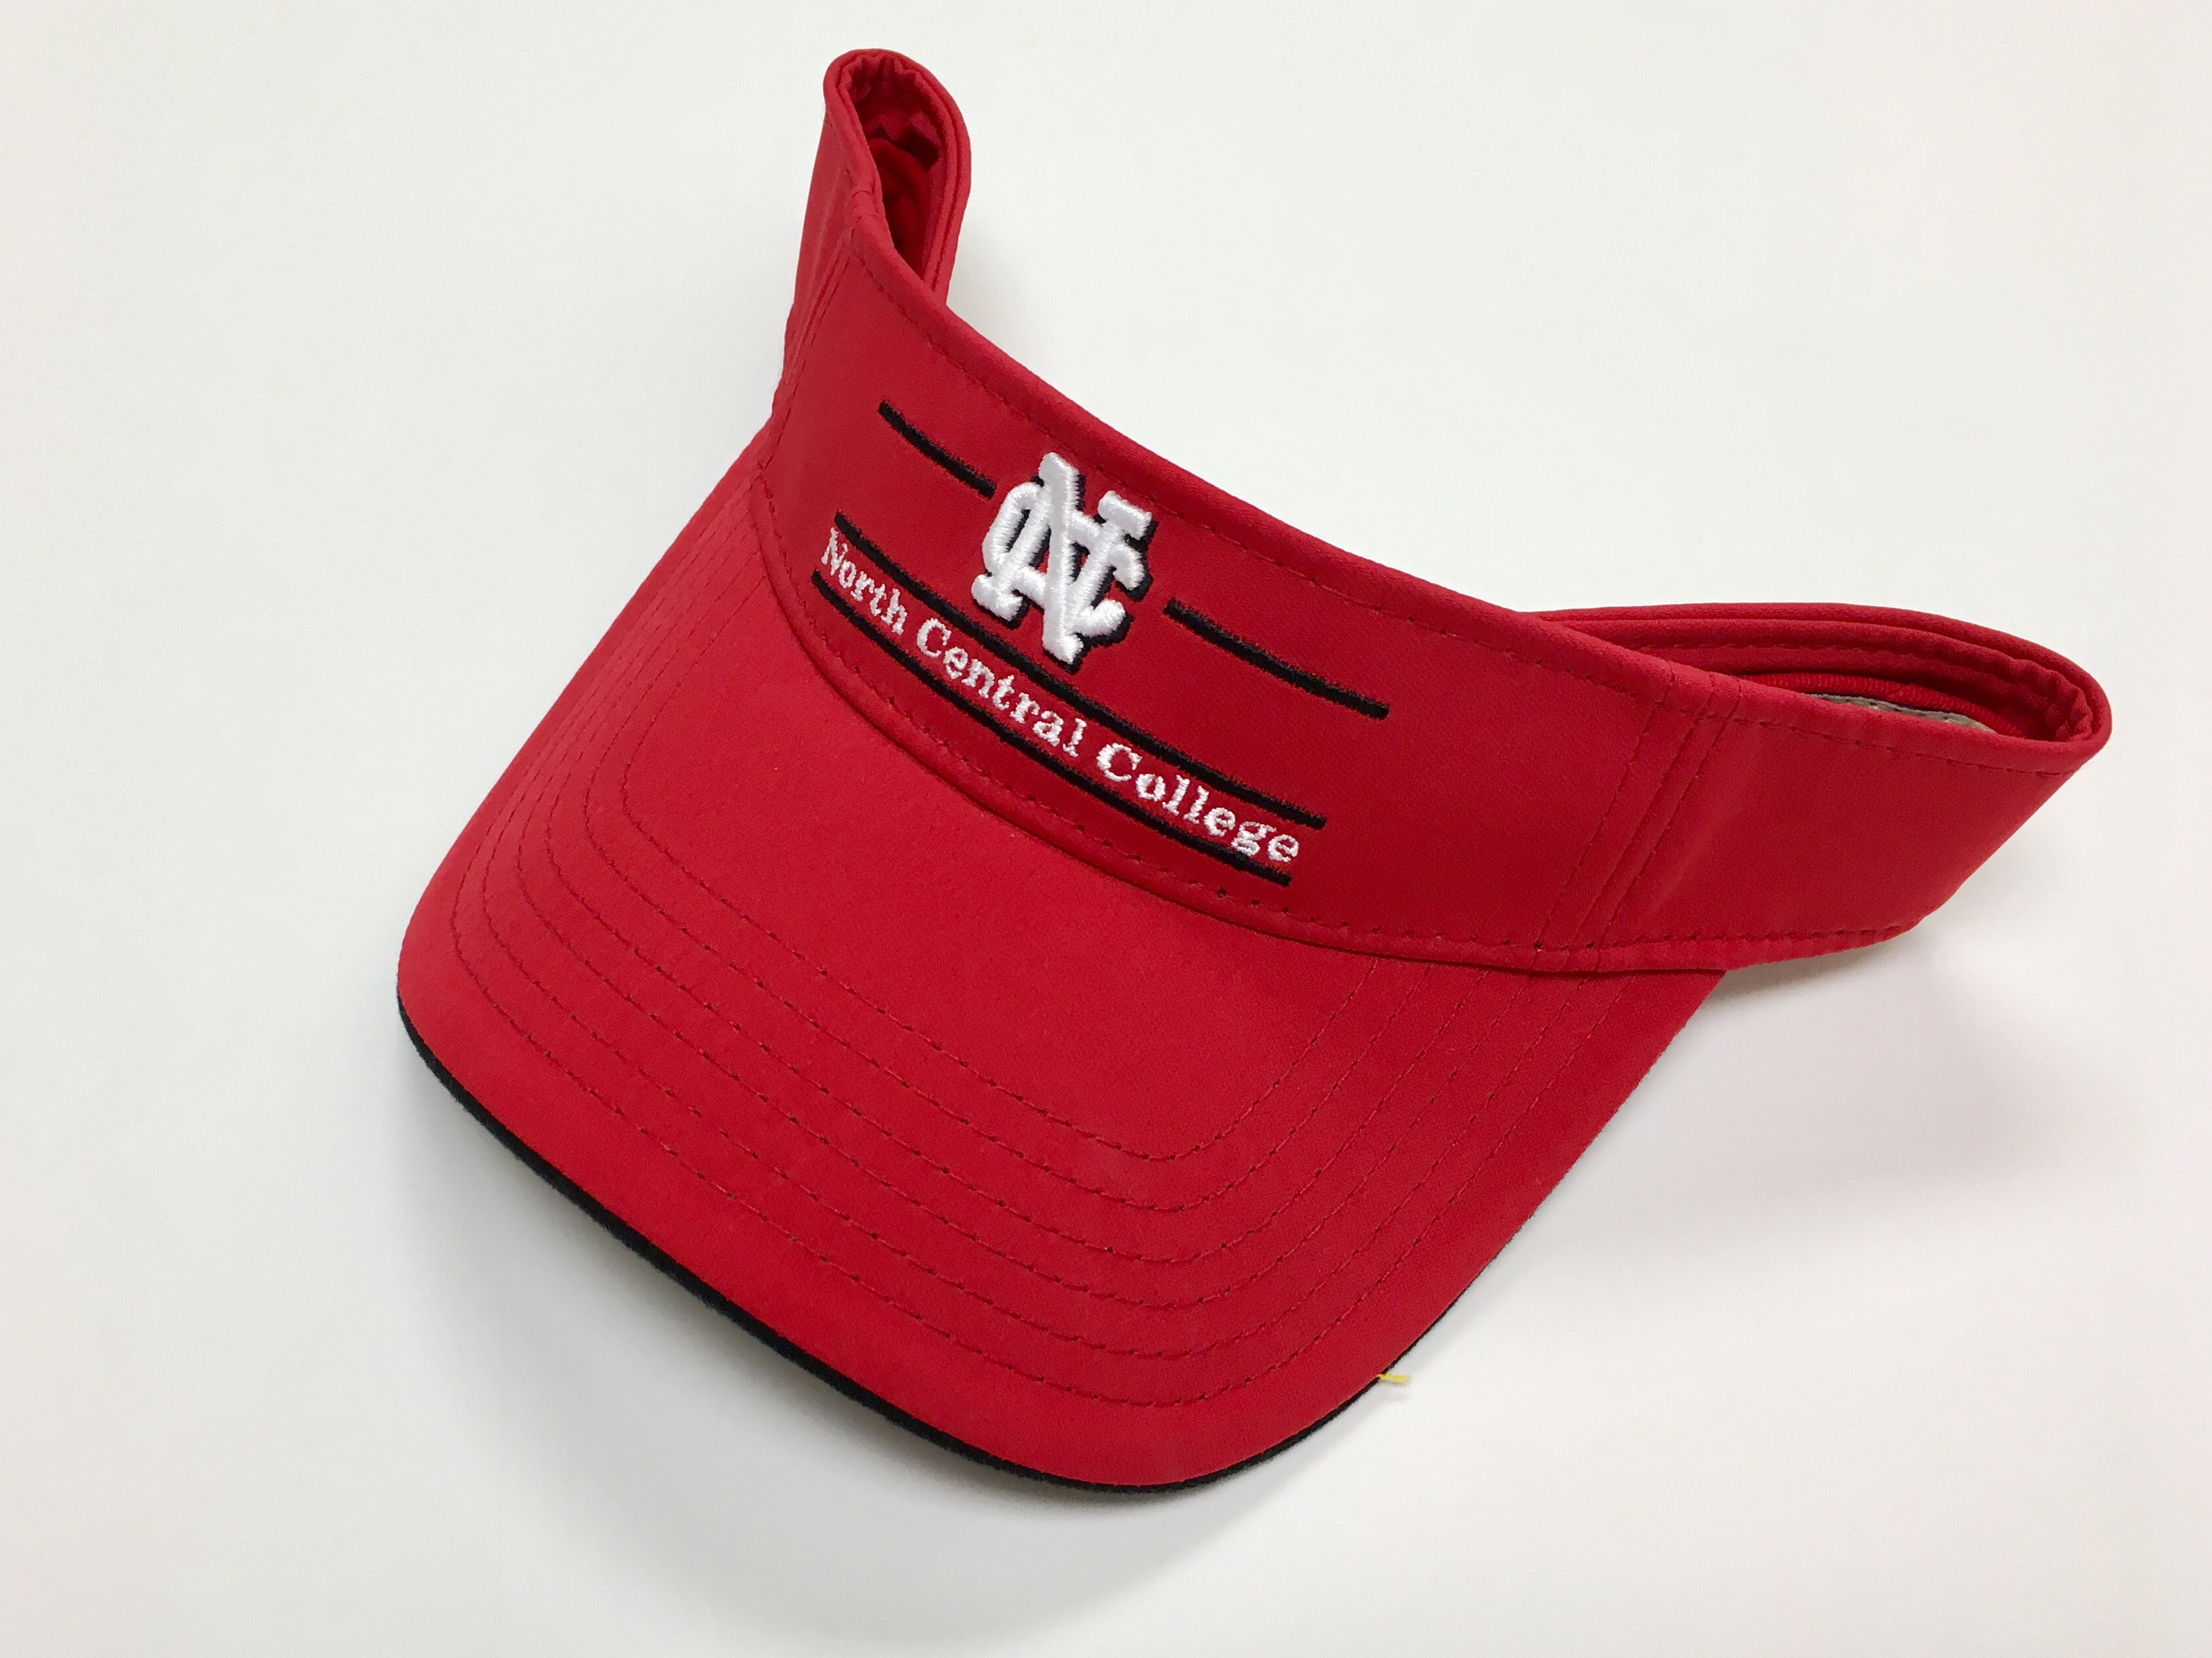 Image for the Red Visor by The Game product